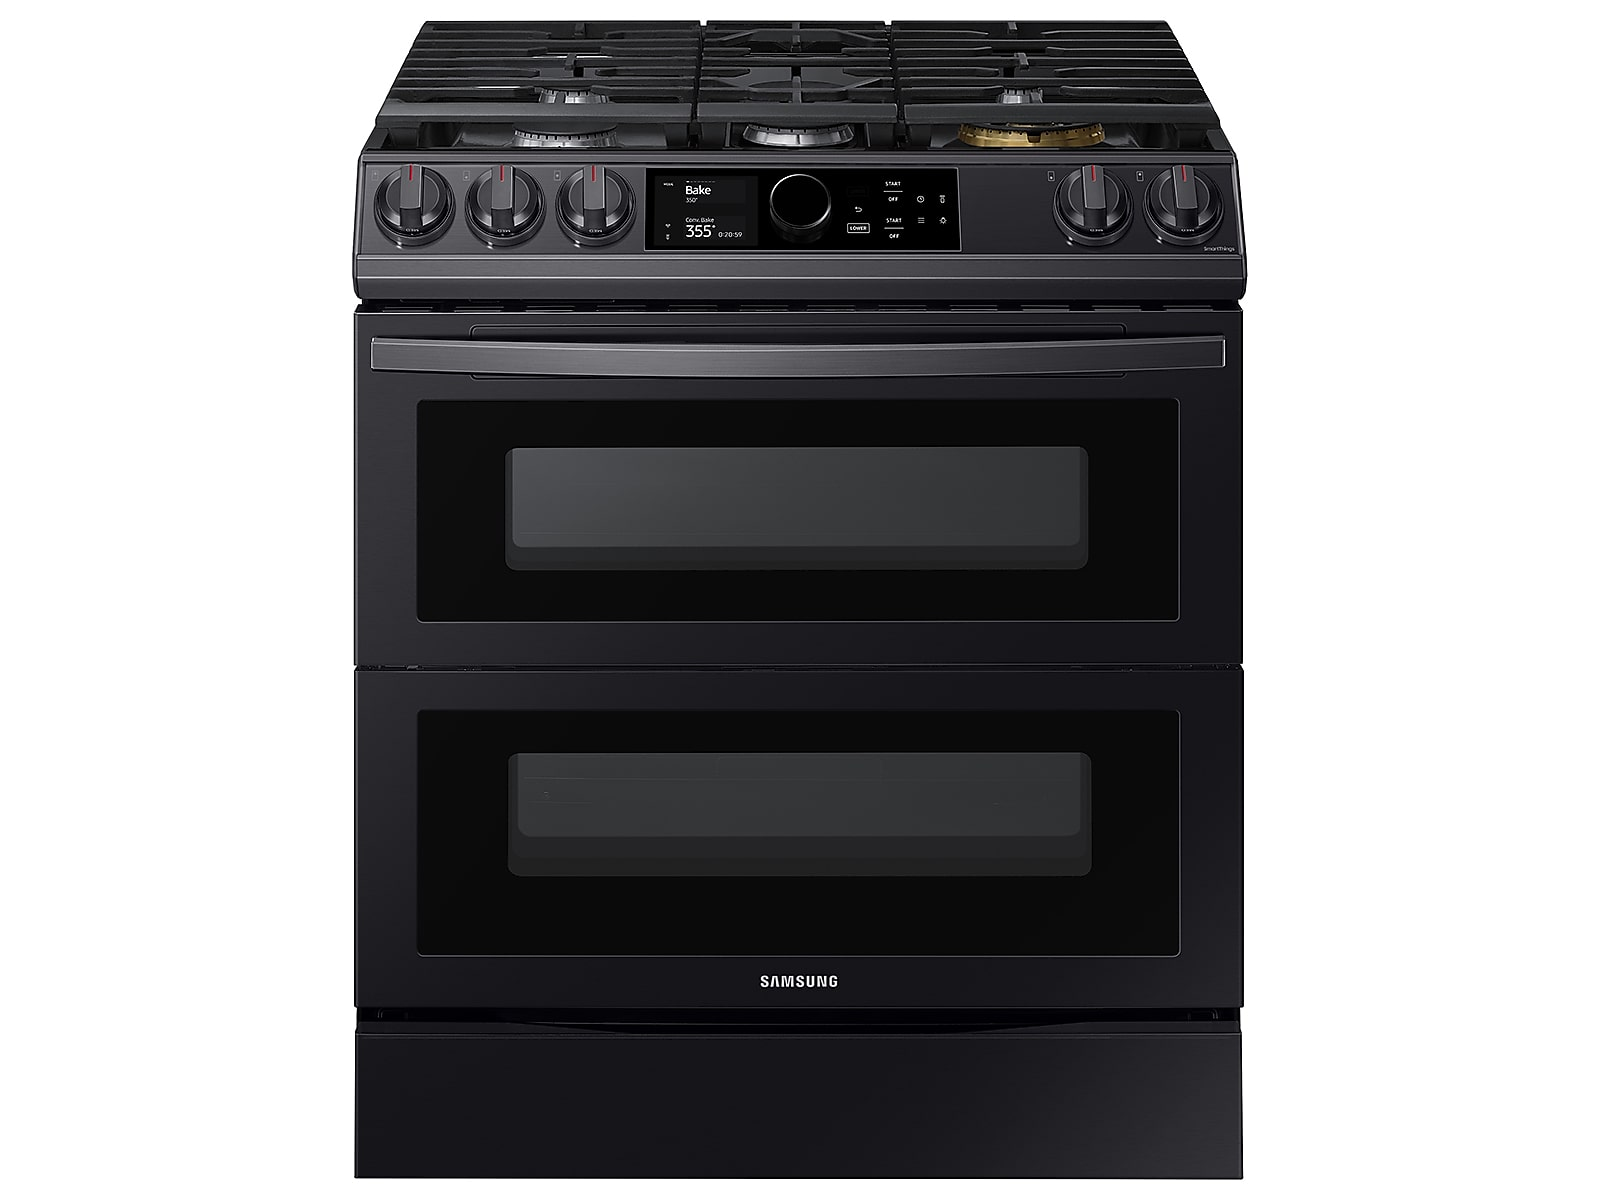 Samsung 6.0 cu ft. Smart Slide-in Gas Range with Flex Duo™, Smart Dial & Air Fry in Black Stainless Steel(NX60T8751SG/AA)